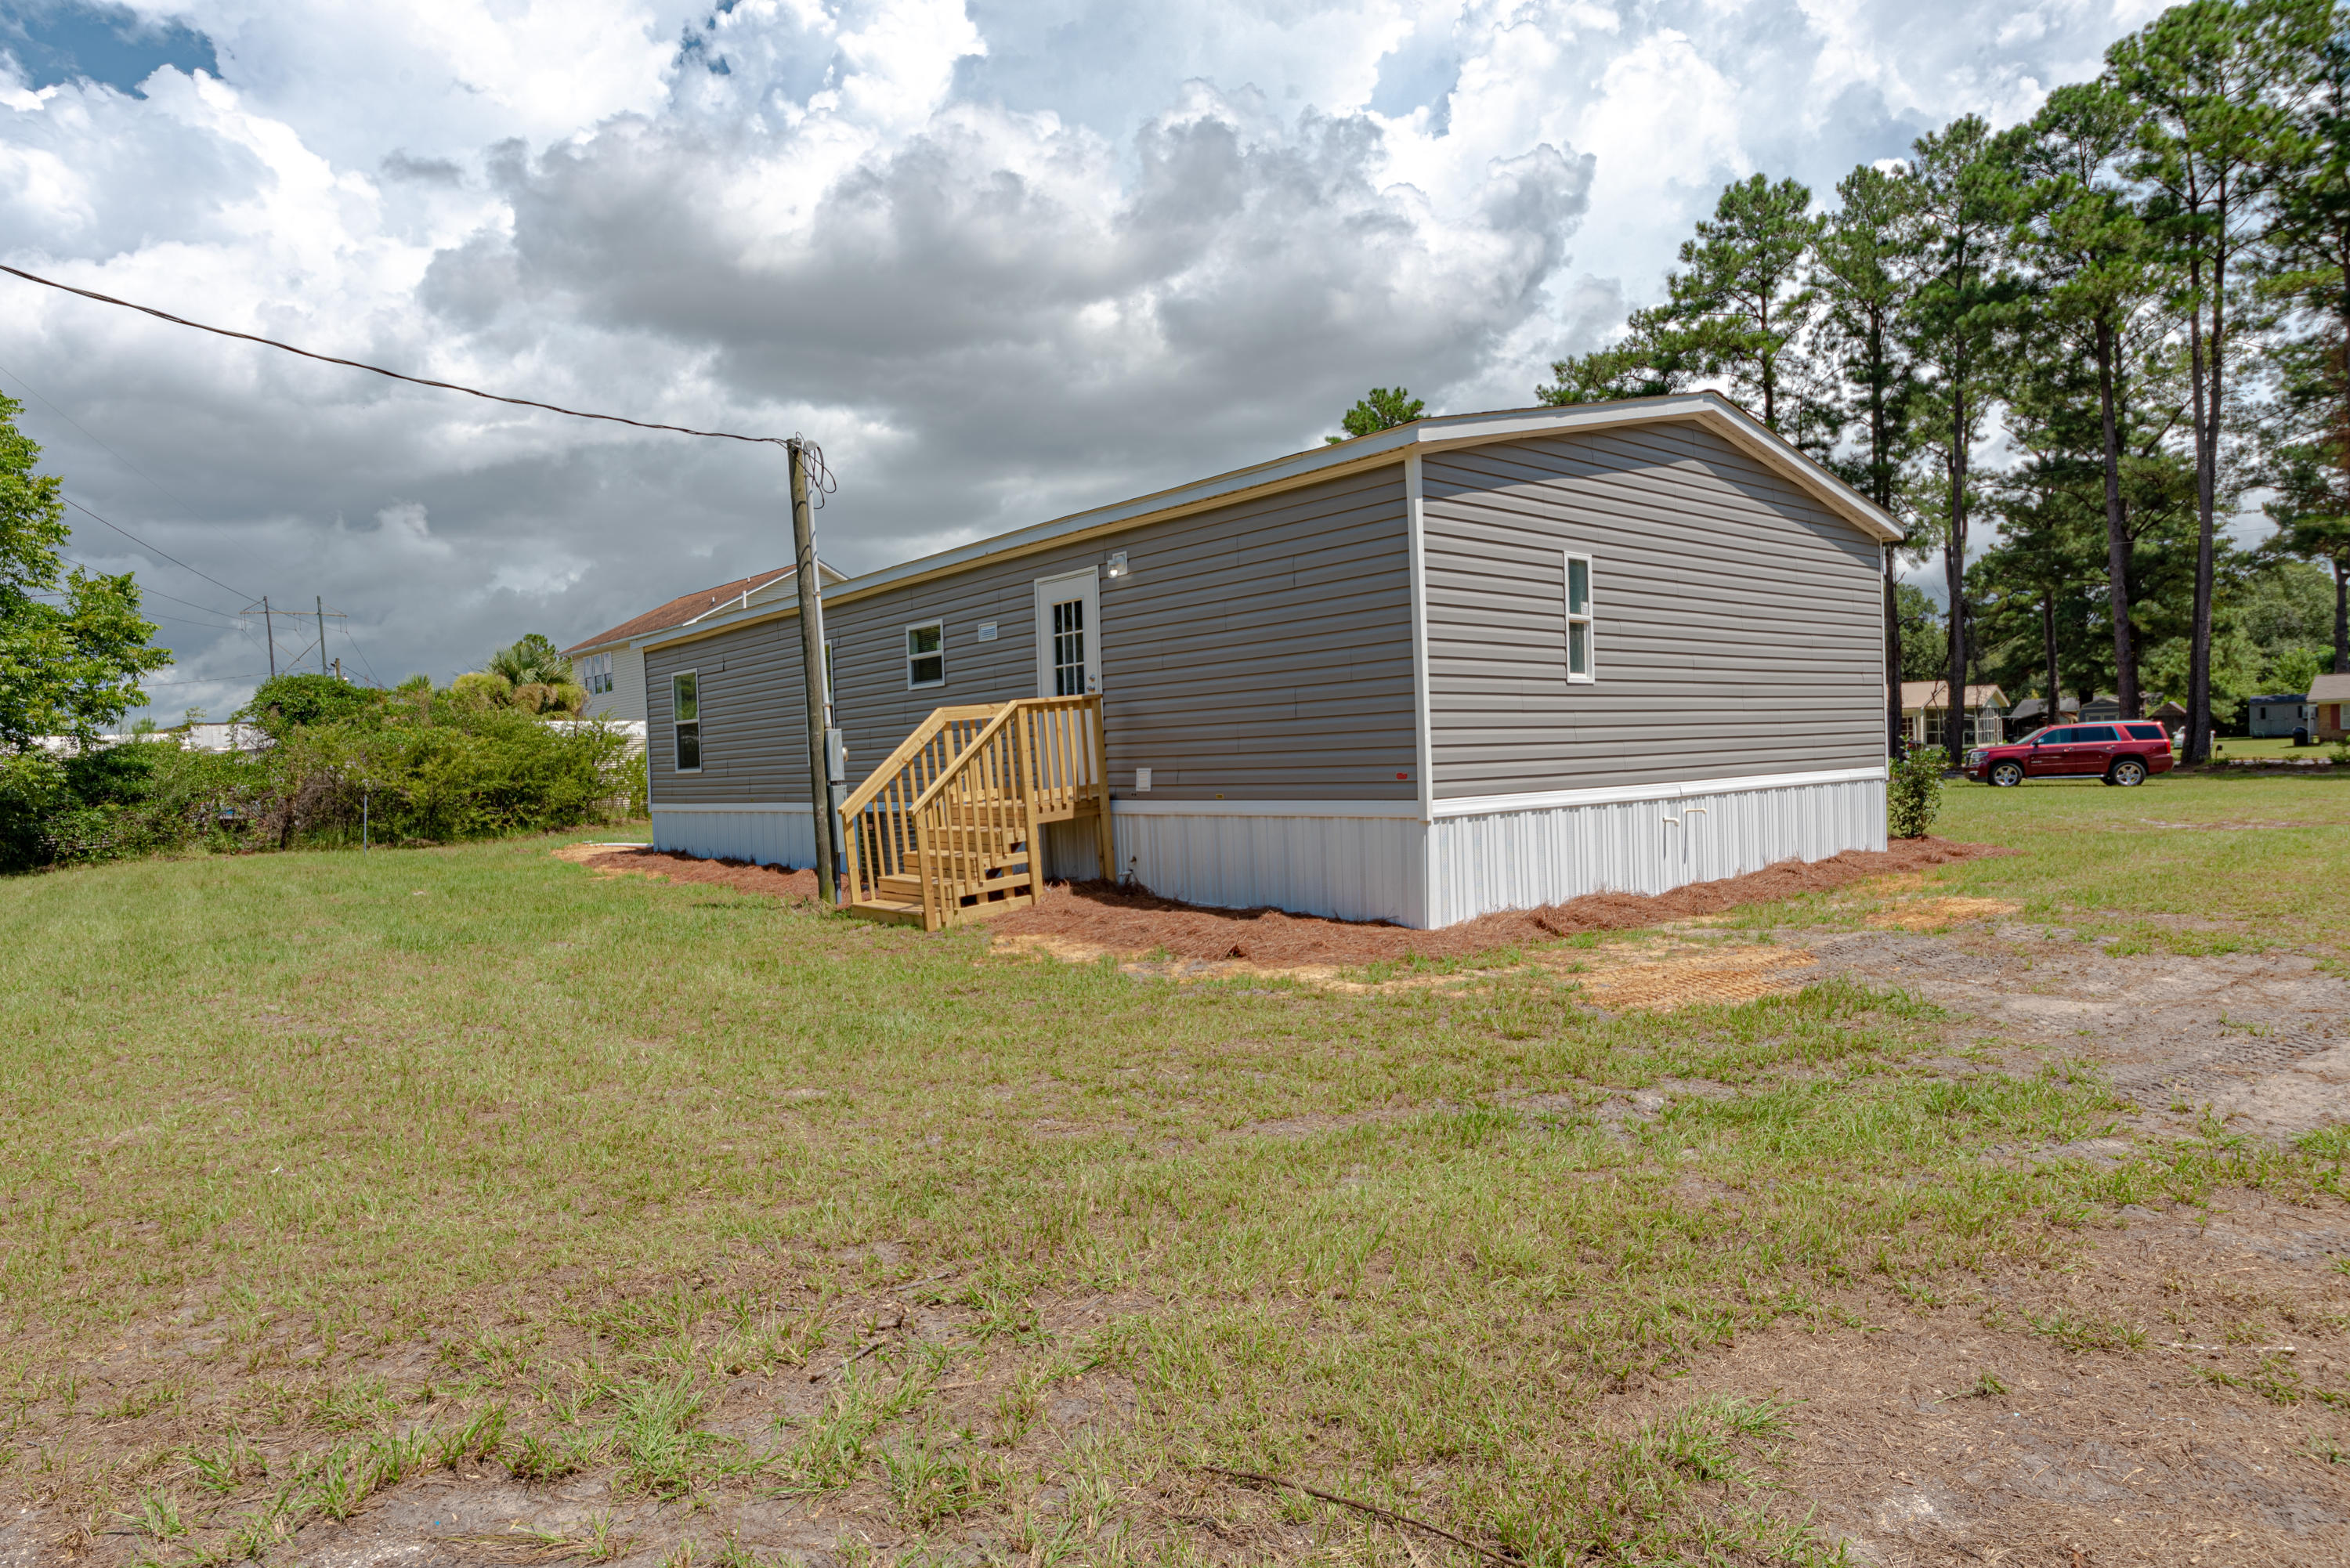 Roosevelt Heights Homes For Sale - 873 Phillips, Walterboro, SC - 3